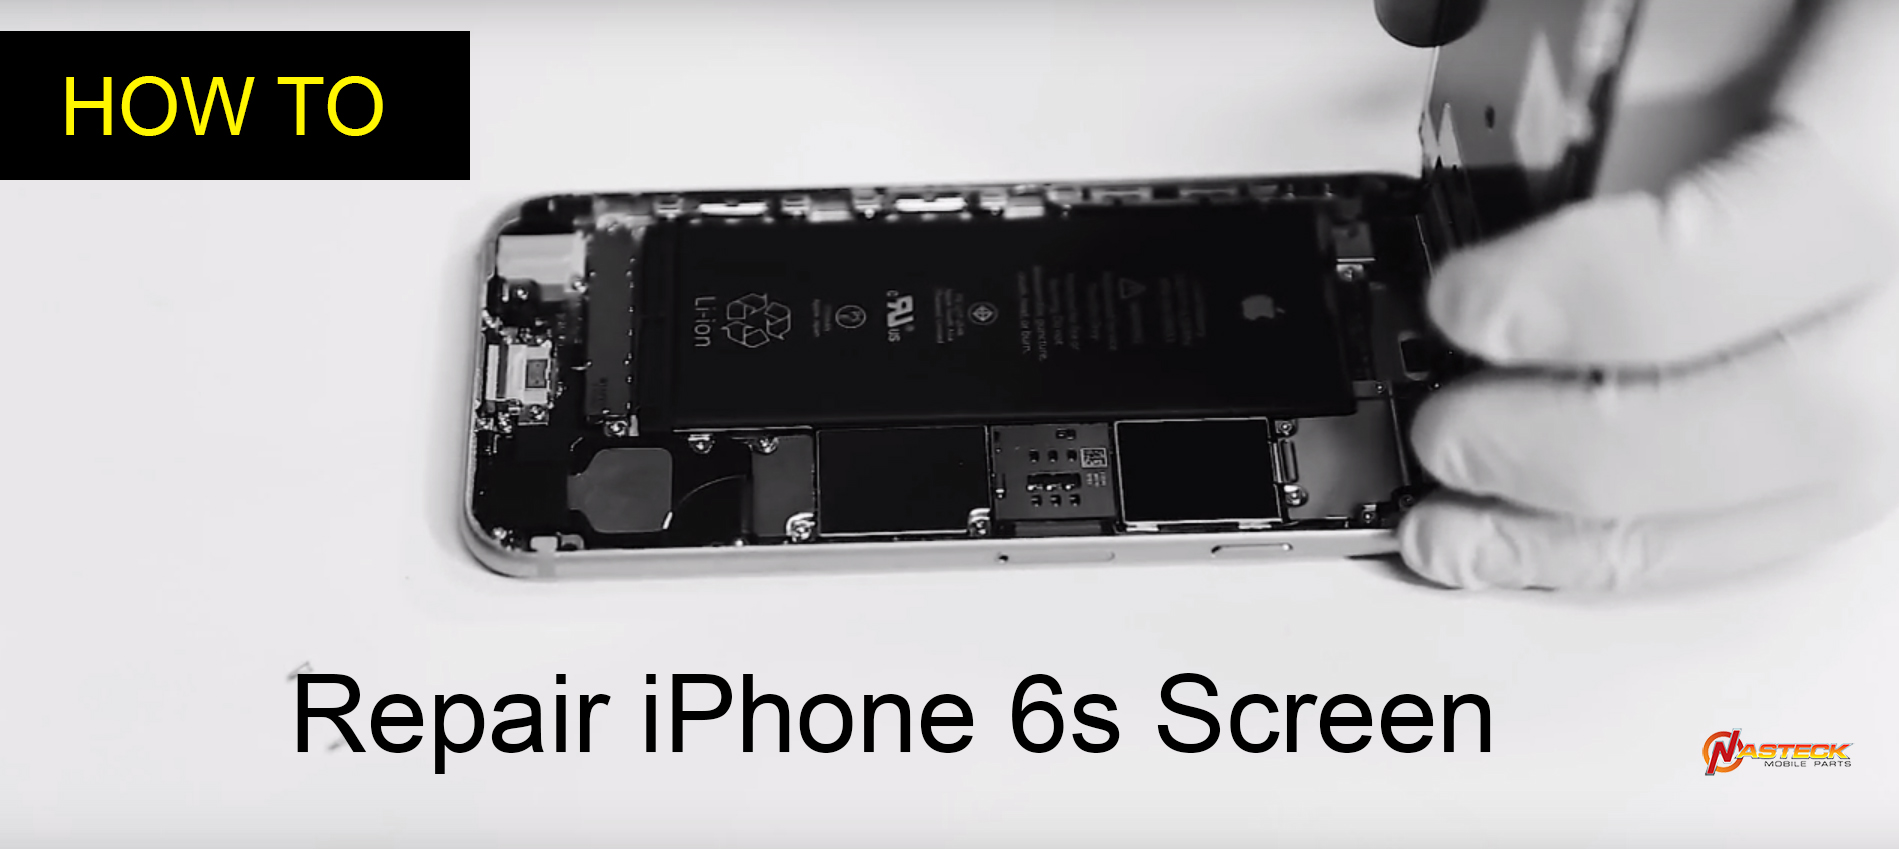 how to replace a cracked or broken screen on your iPhone 6s